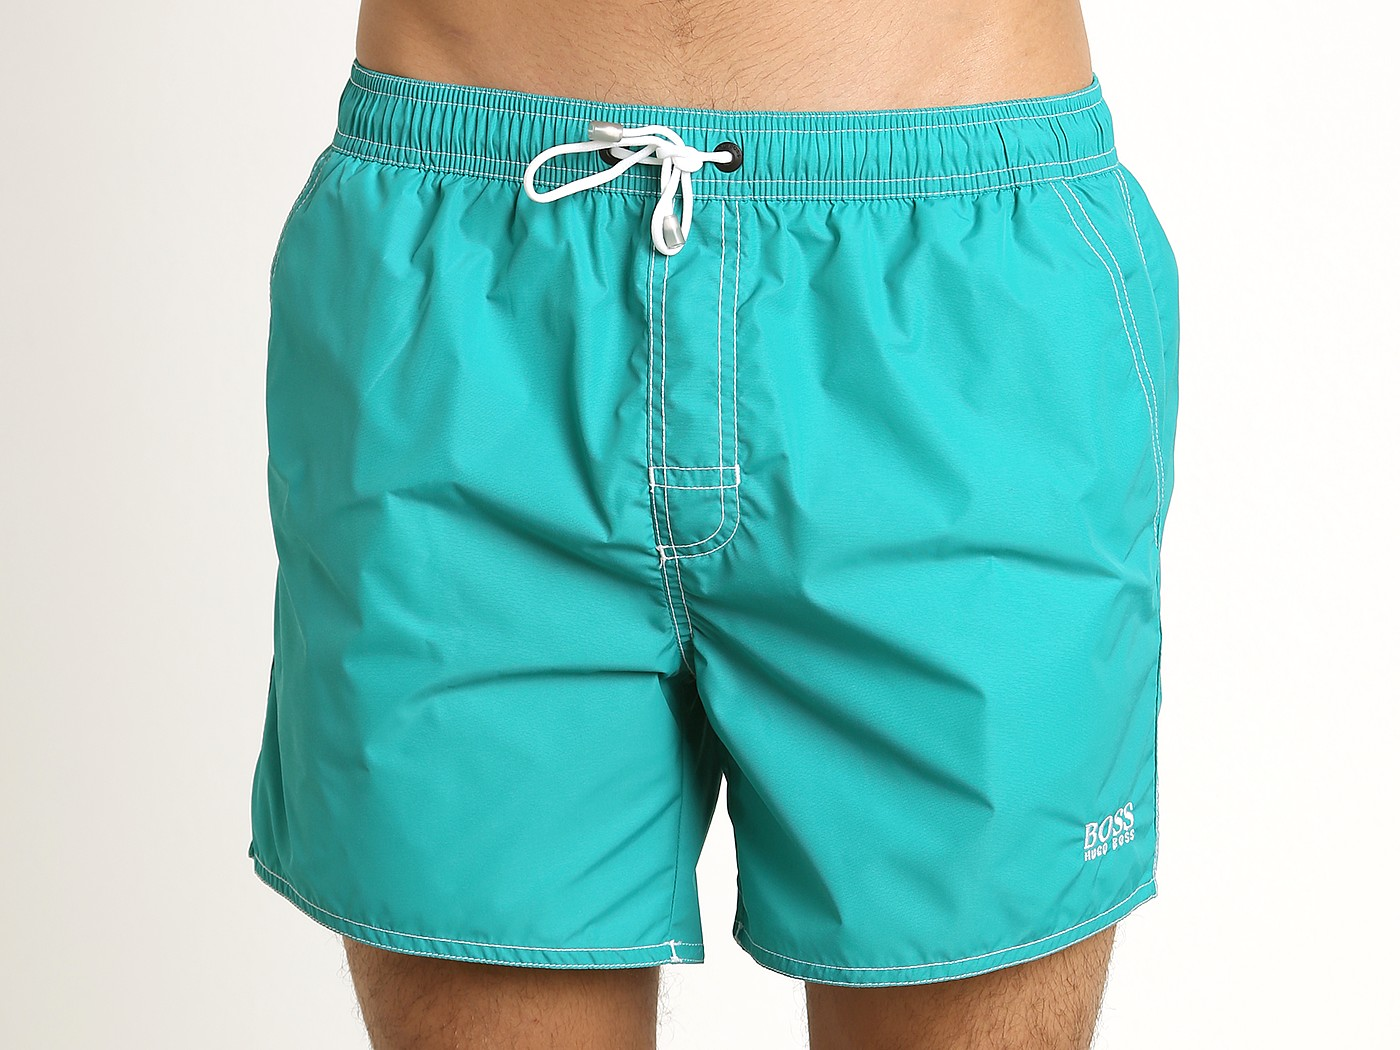 0ac7e9dd98 Hugo Boss Lobster Swim Shorts Teal 50332322-448 at International Jock